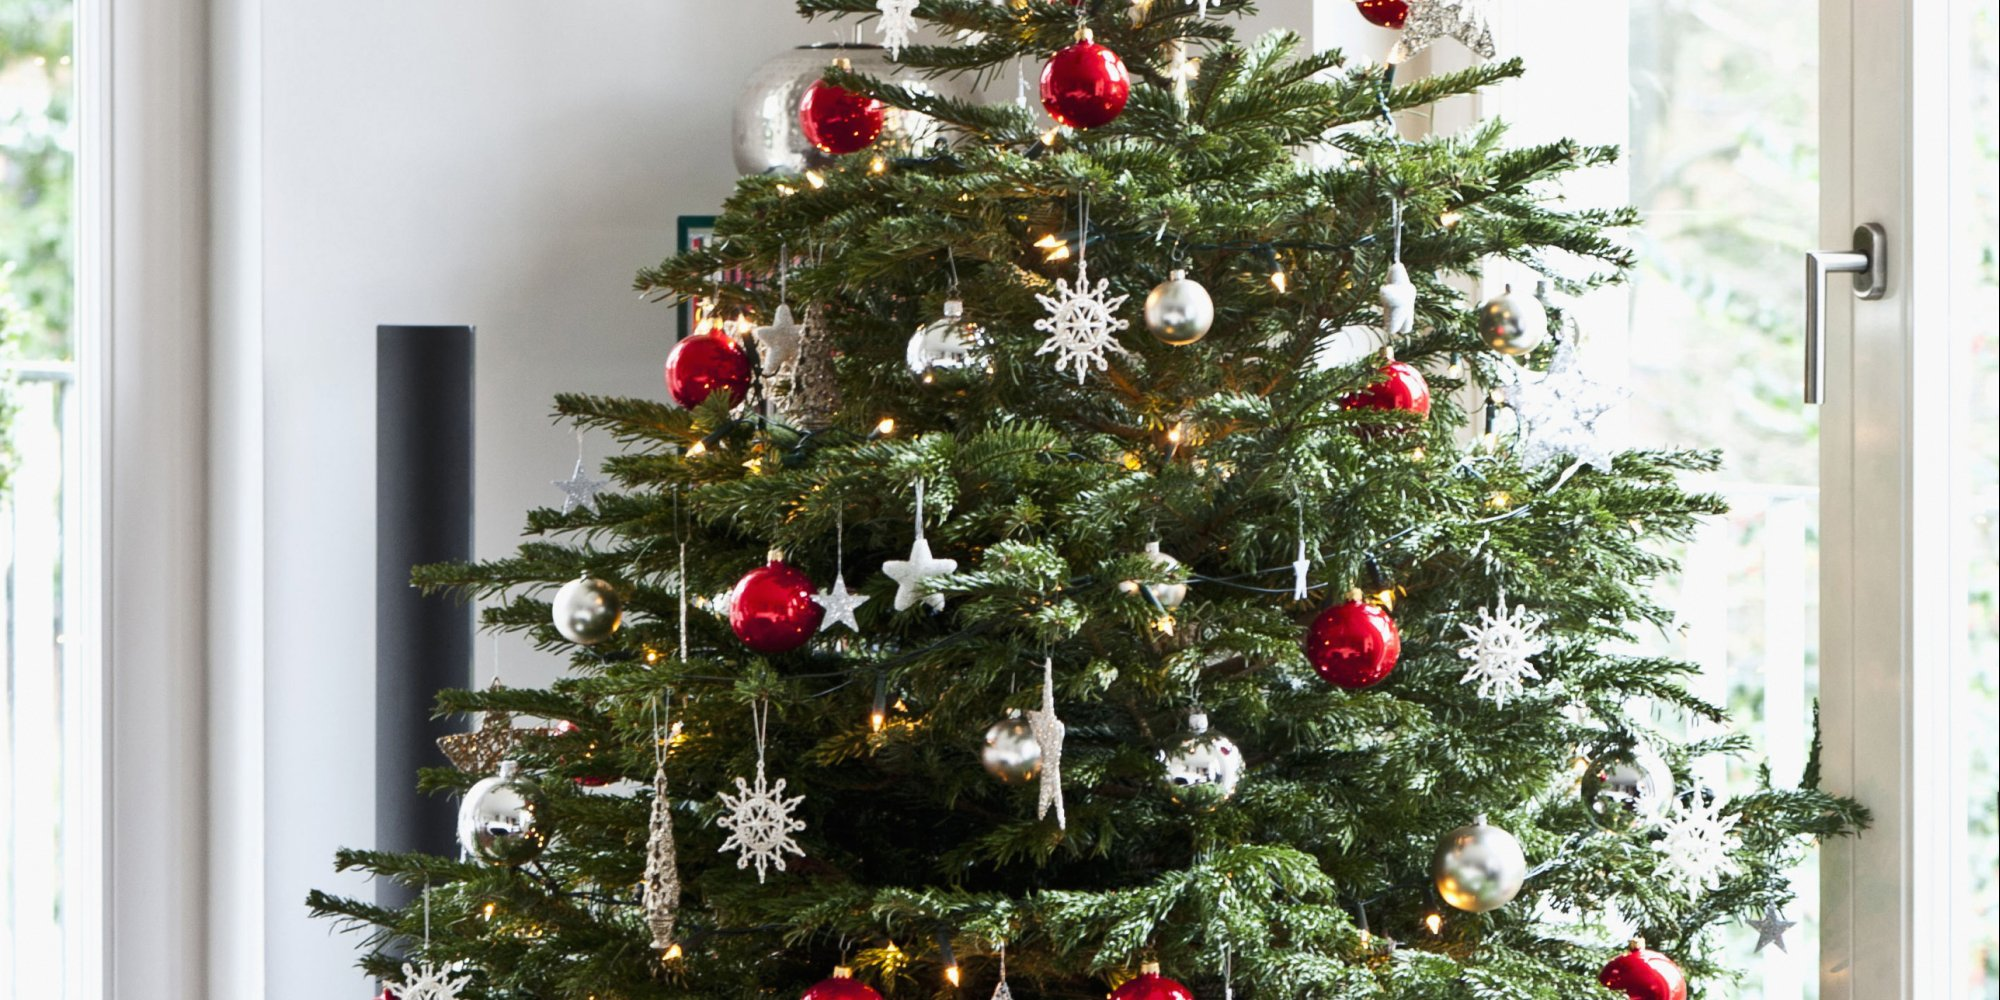 How To Take Care Of A Real Christmas Tree.The Do S And Don Ts To Decorating The Perfect Christmas Tree